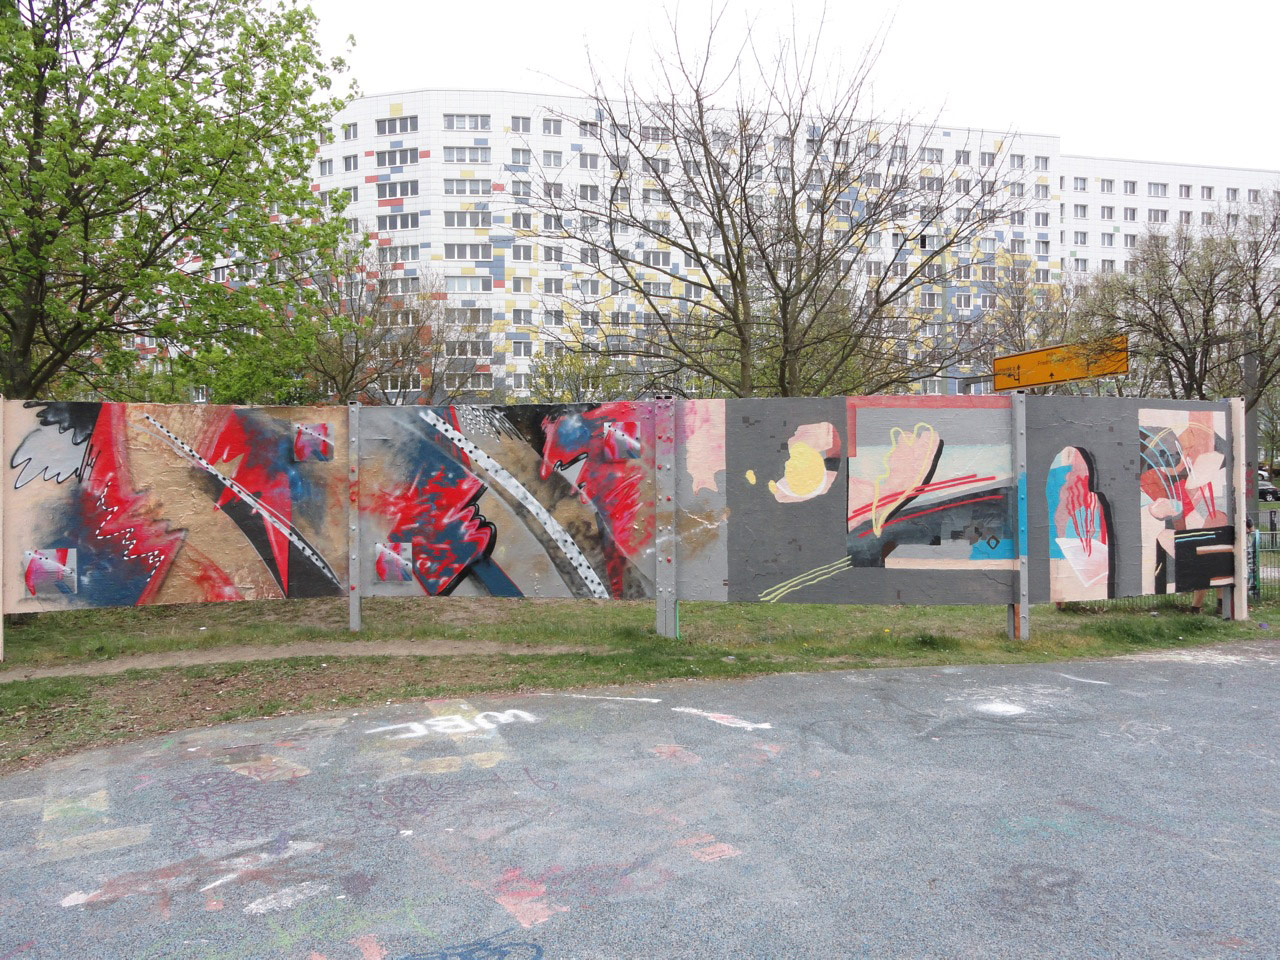 johannes-mundinger-new-murals-in-germany-05